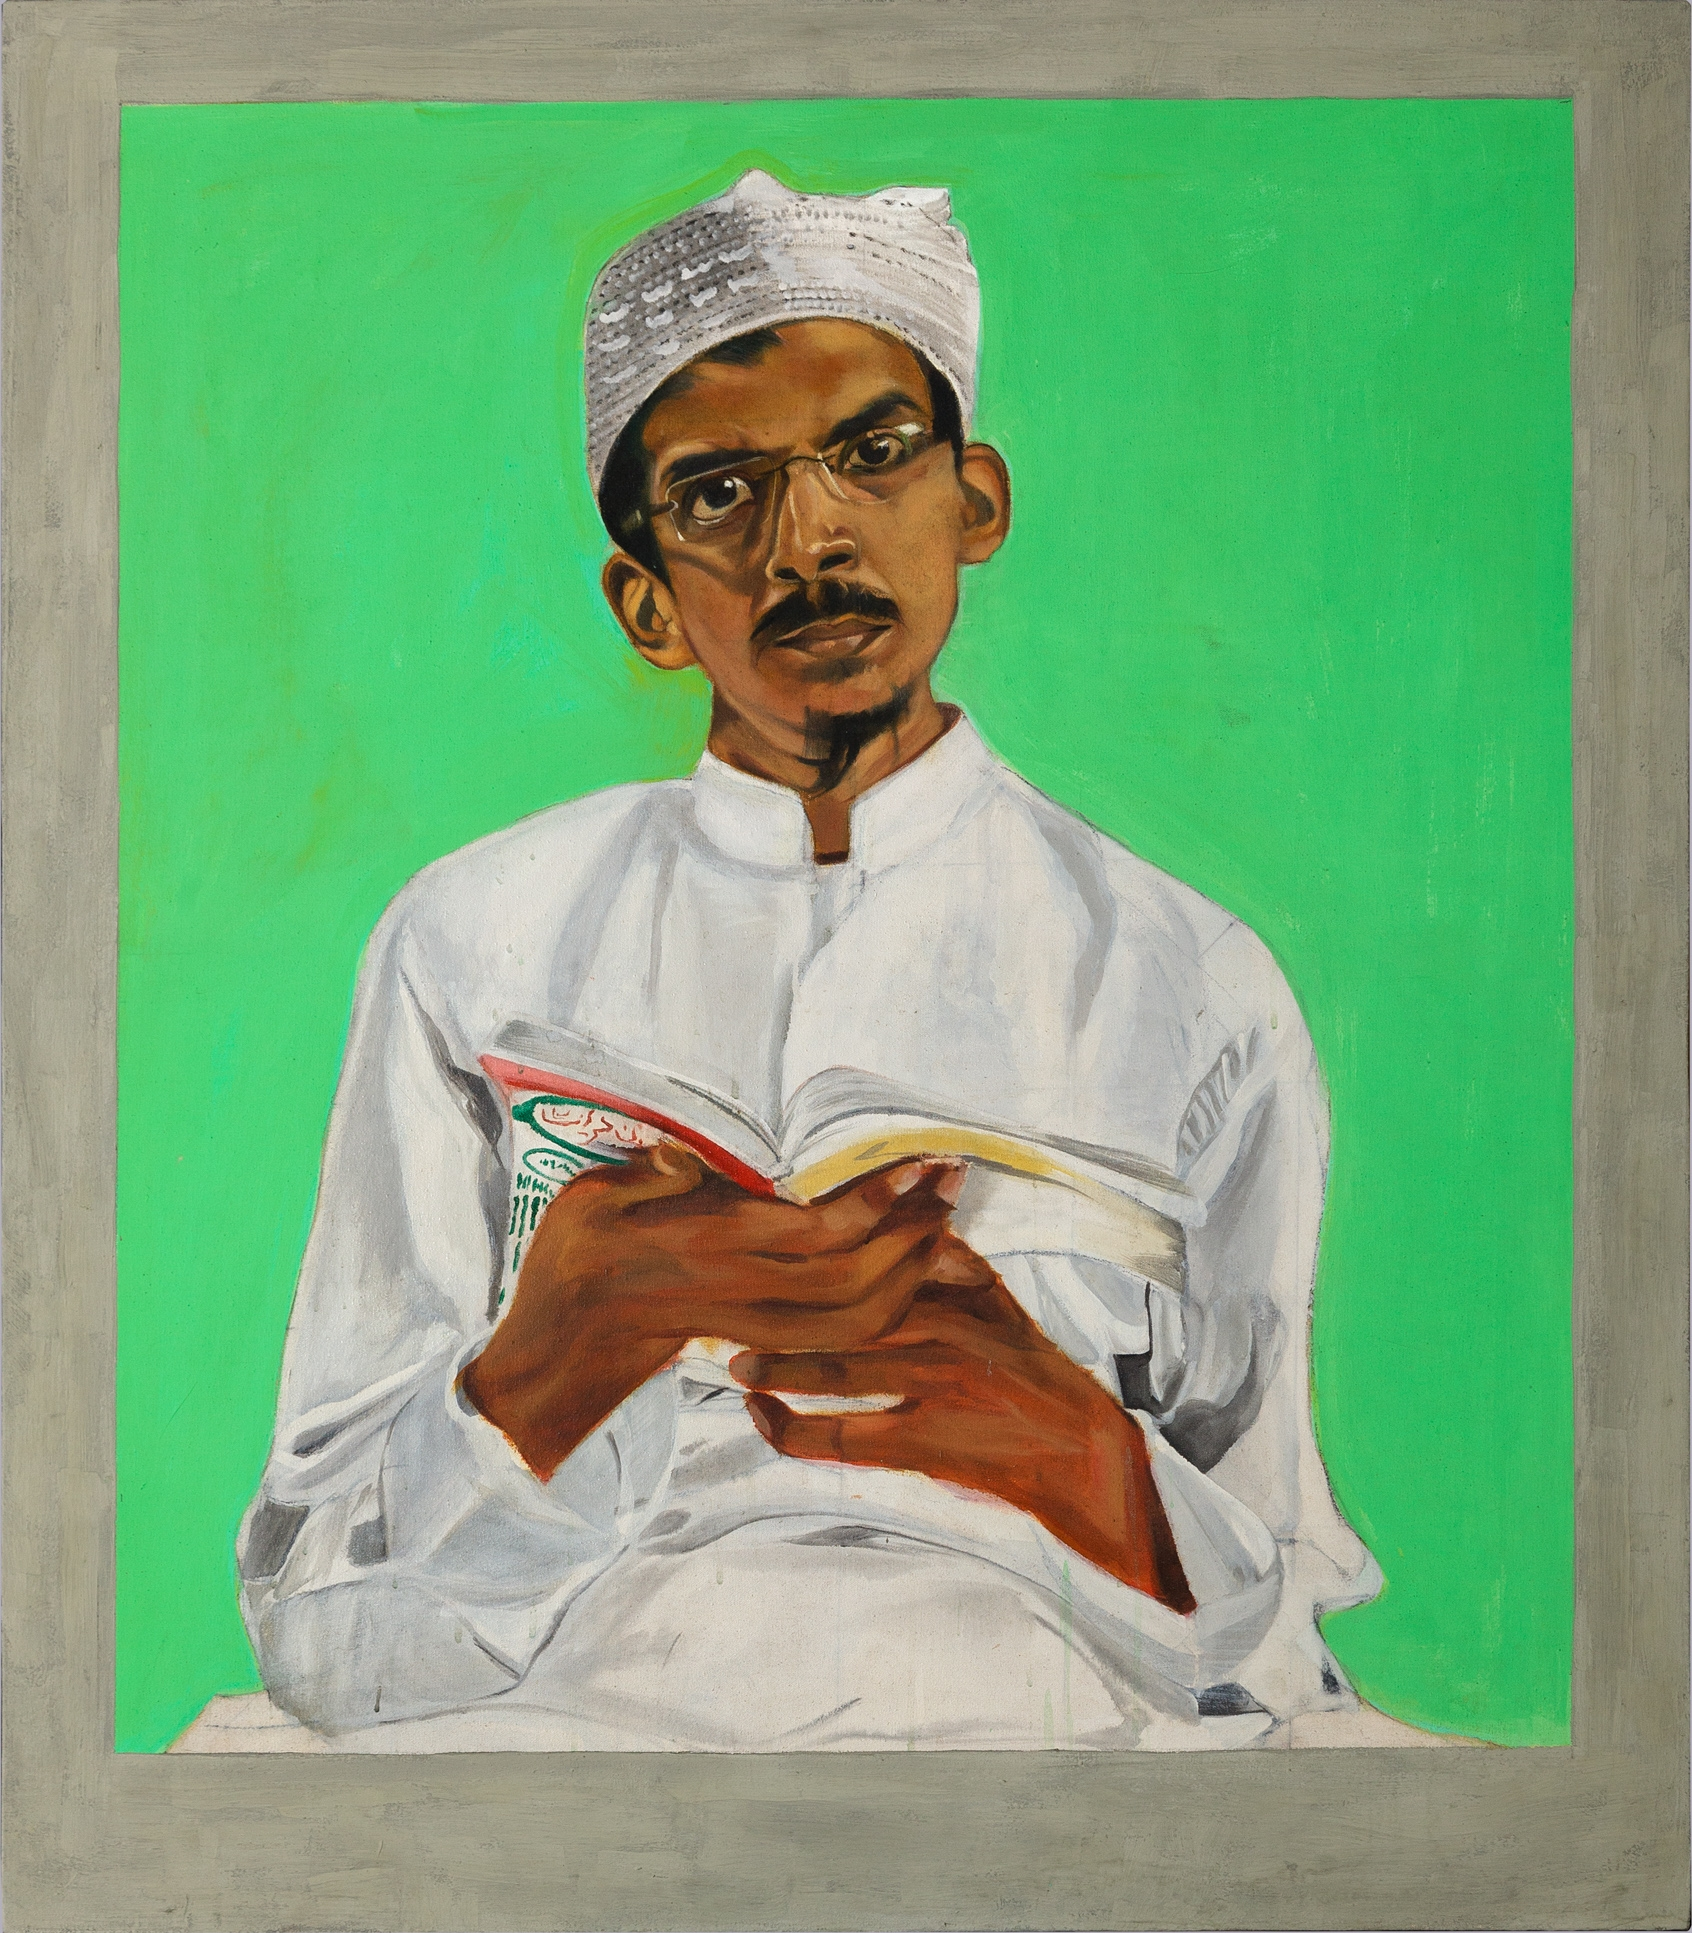 Mahindra Vartak, Portrait of Abdul Azim Kazi, Faith Healer. Plastic paint on canvas, 2015. Acquired for Wellcome Collection, London